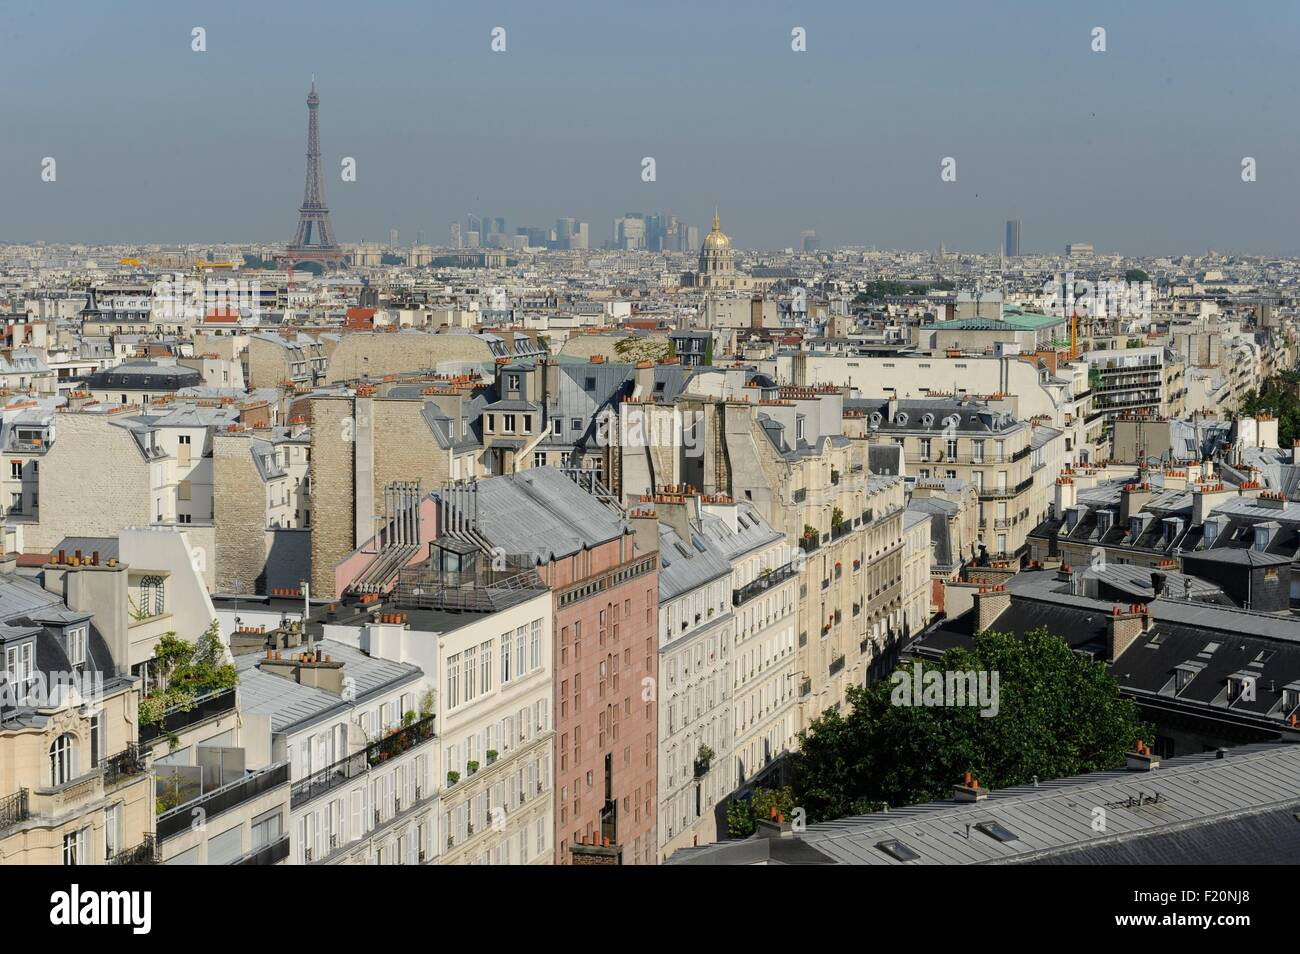 France, Paris, Emerging amid the rooftops of Paris, the Eiffel Tower, In the background, the gilded dome of Les - Stock Image